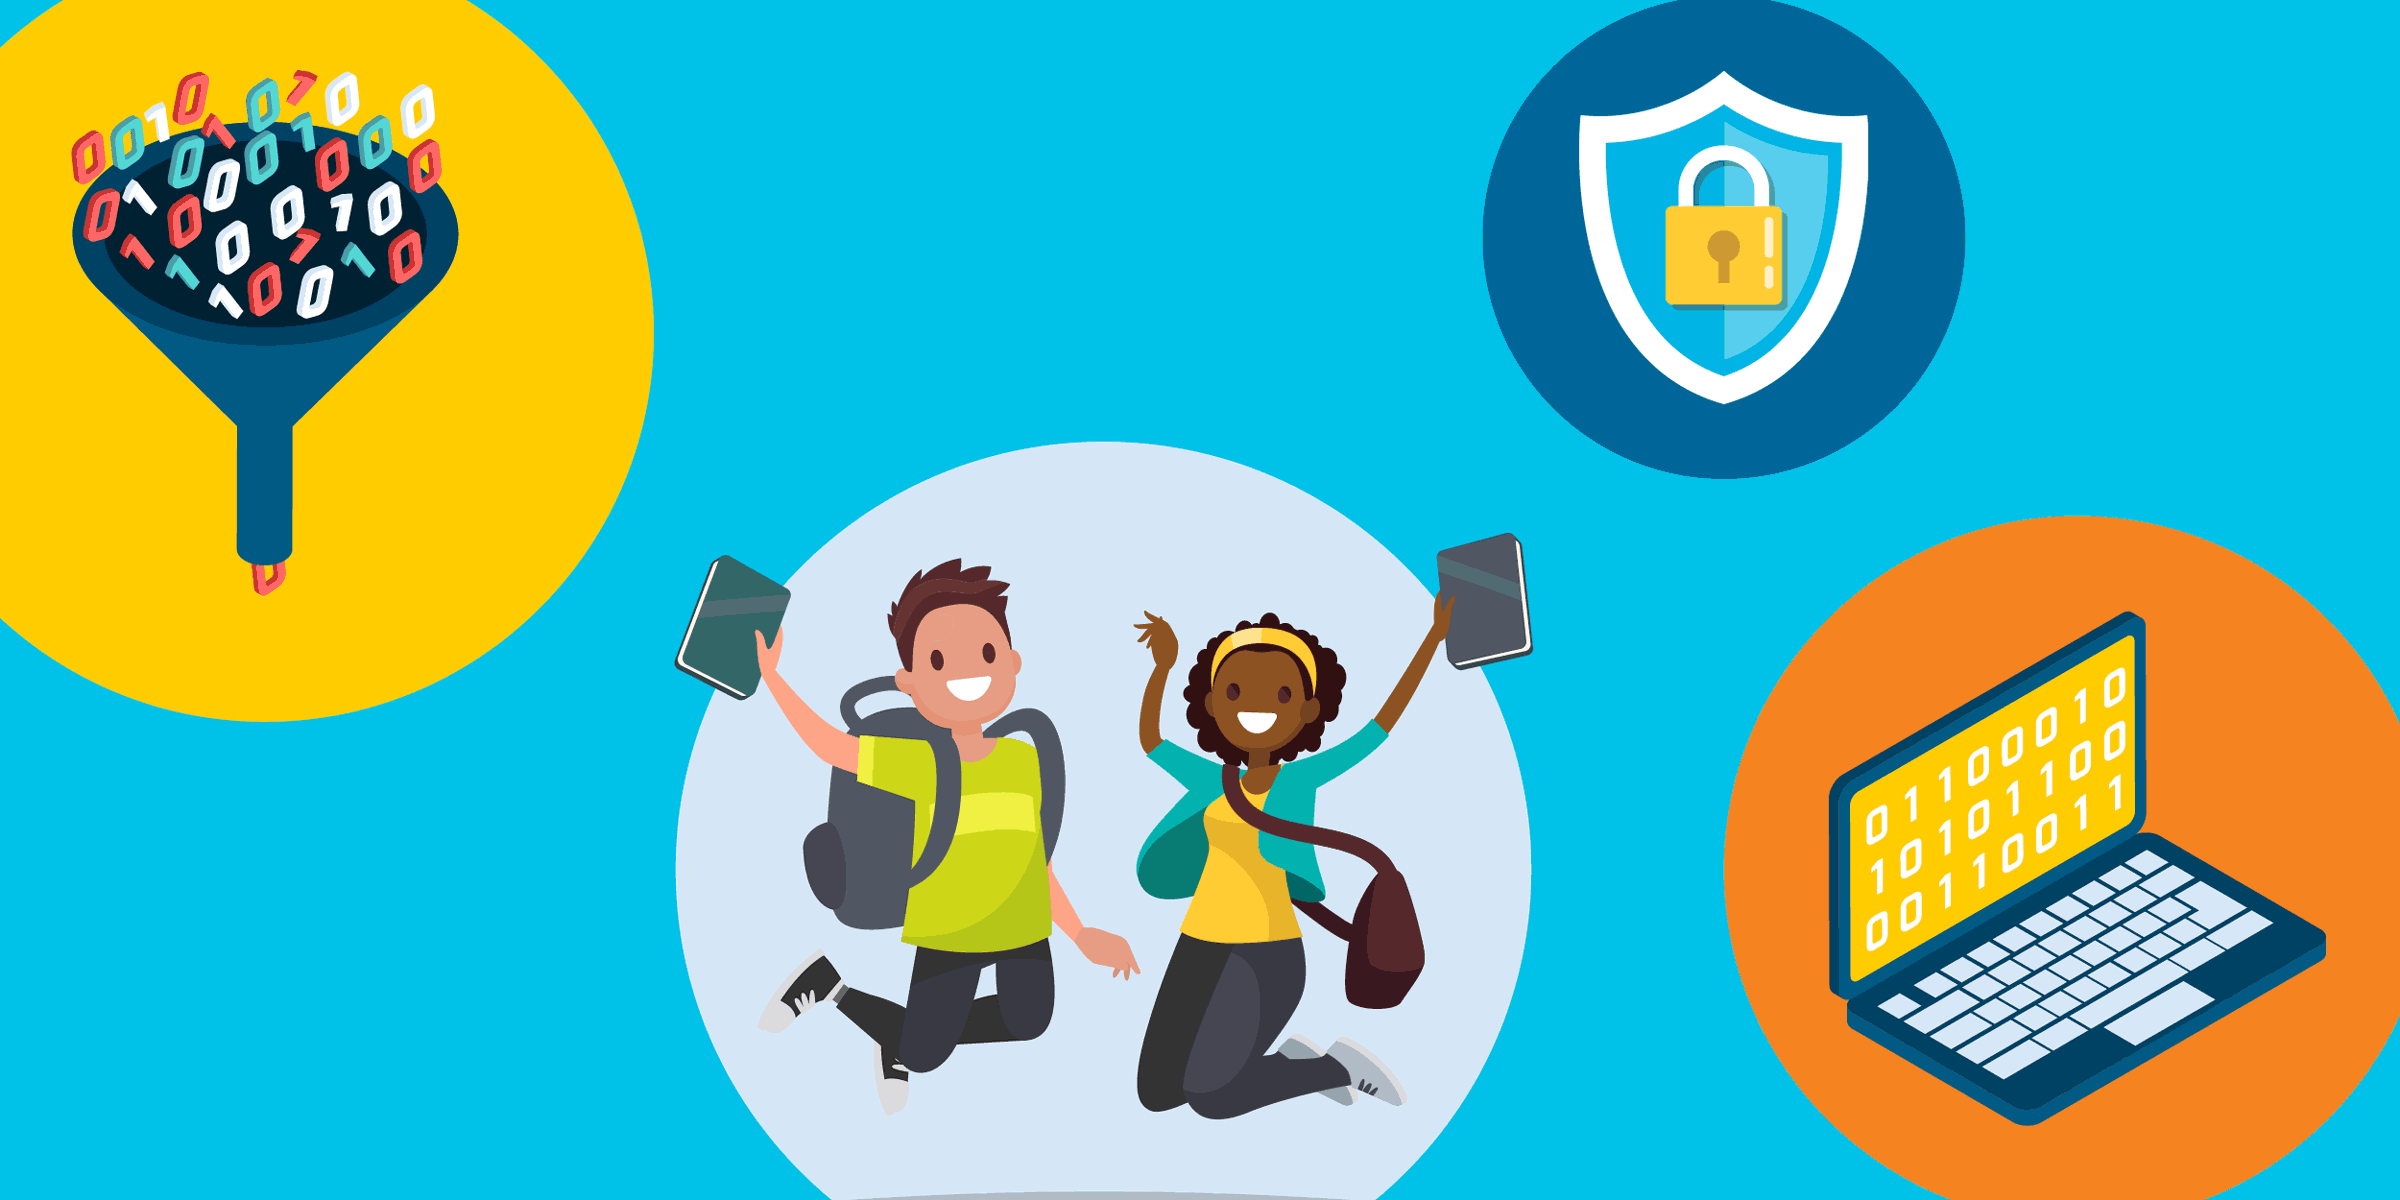 illustration of students jumping into the air,  with icons of a lock, and a laptop and a funnel with zeros and ones, representing nonprofit data security